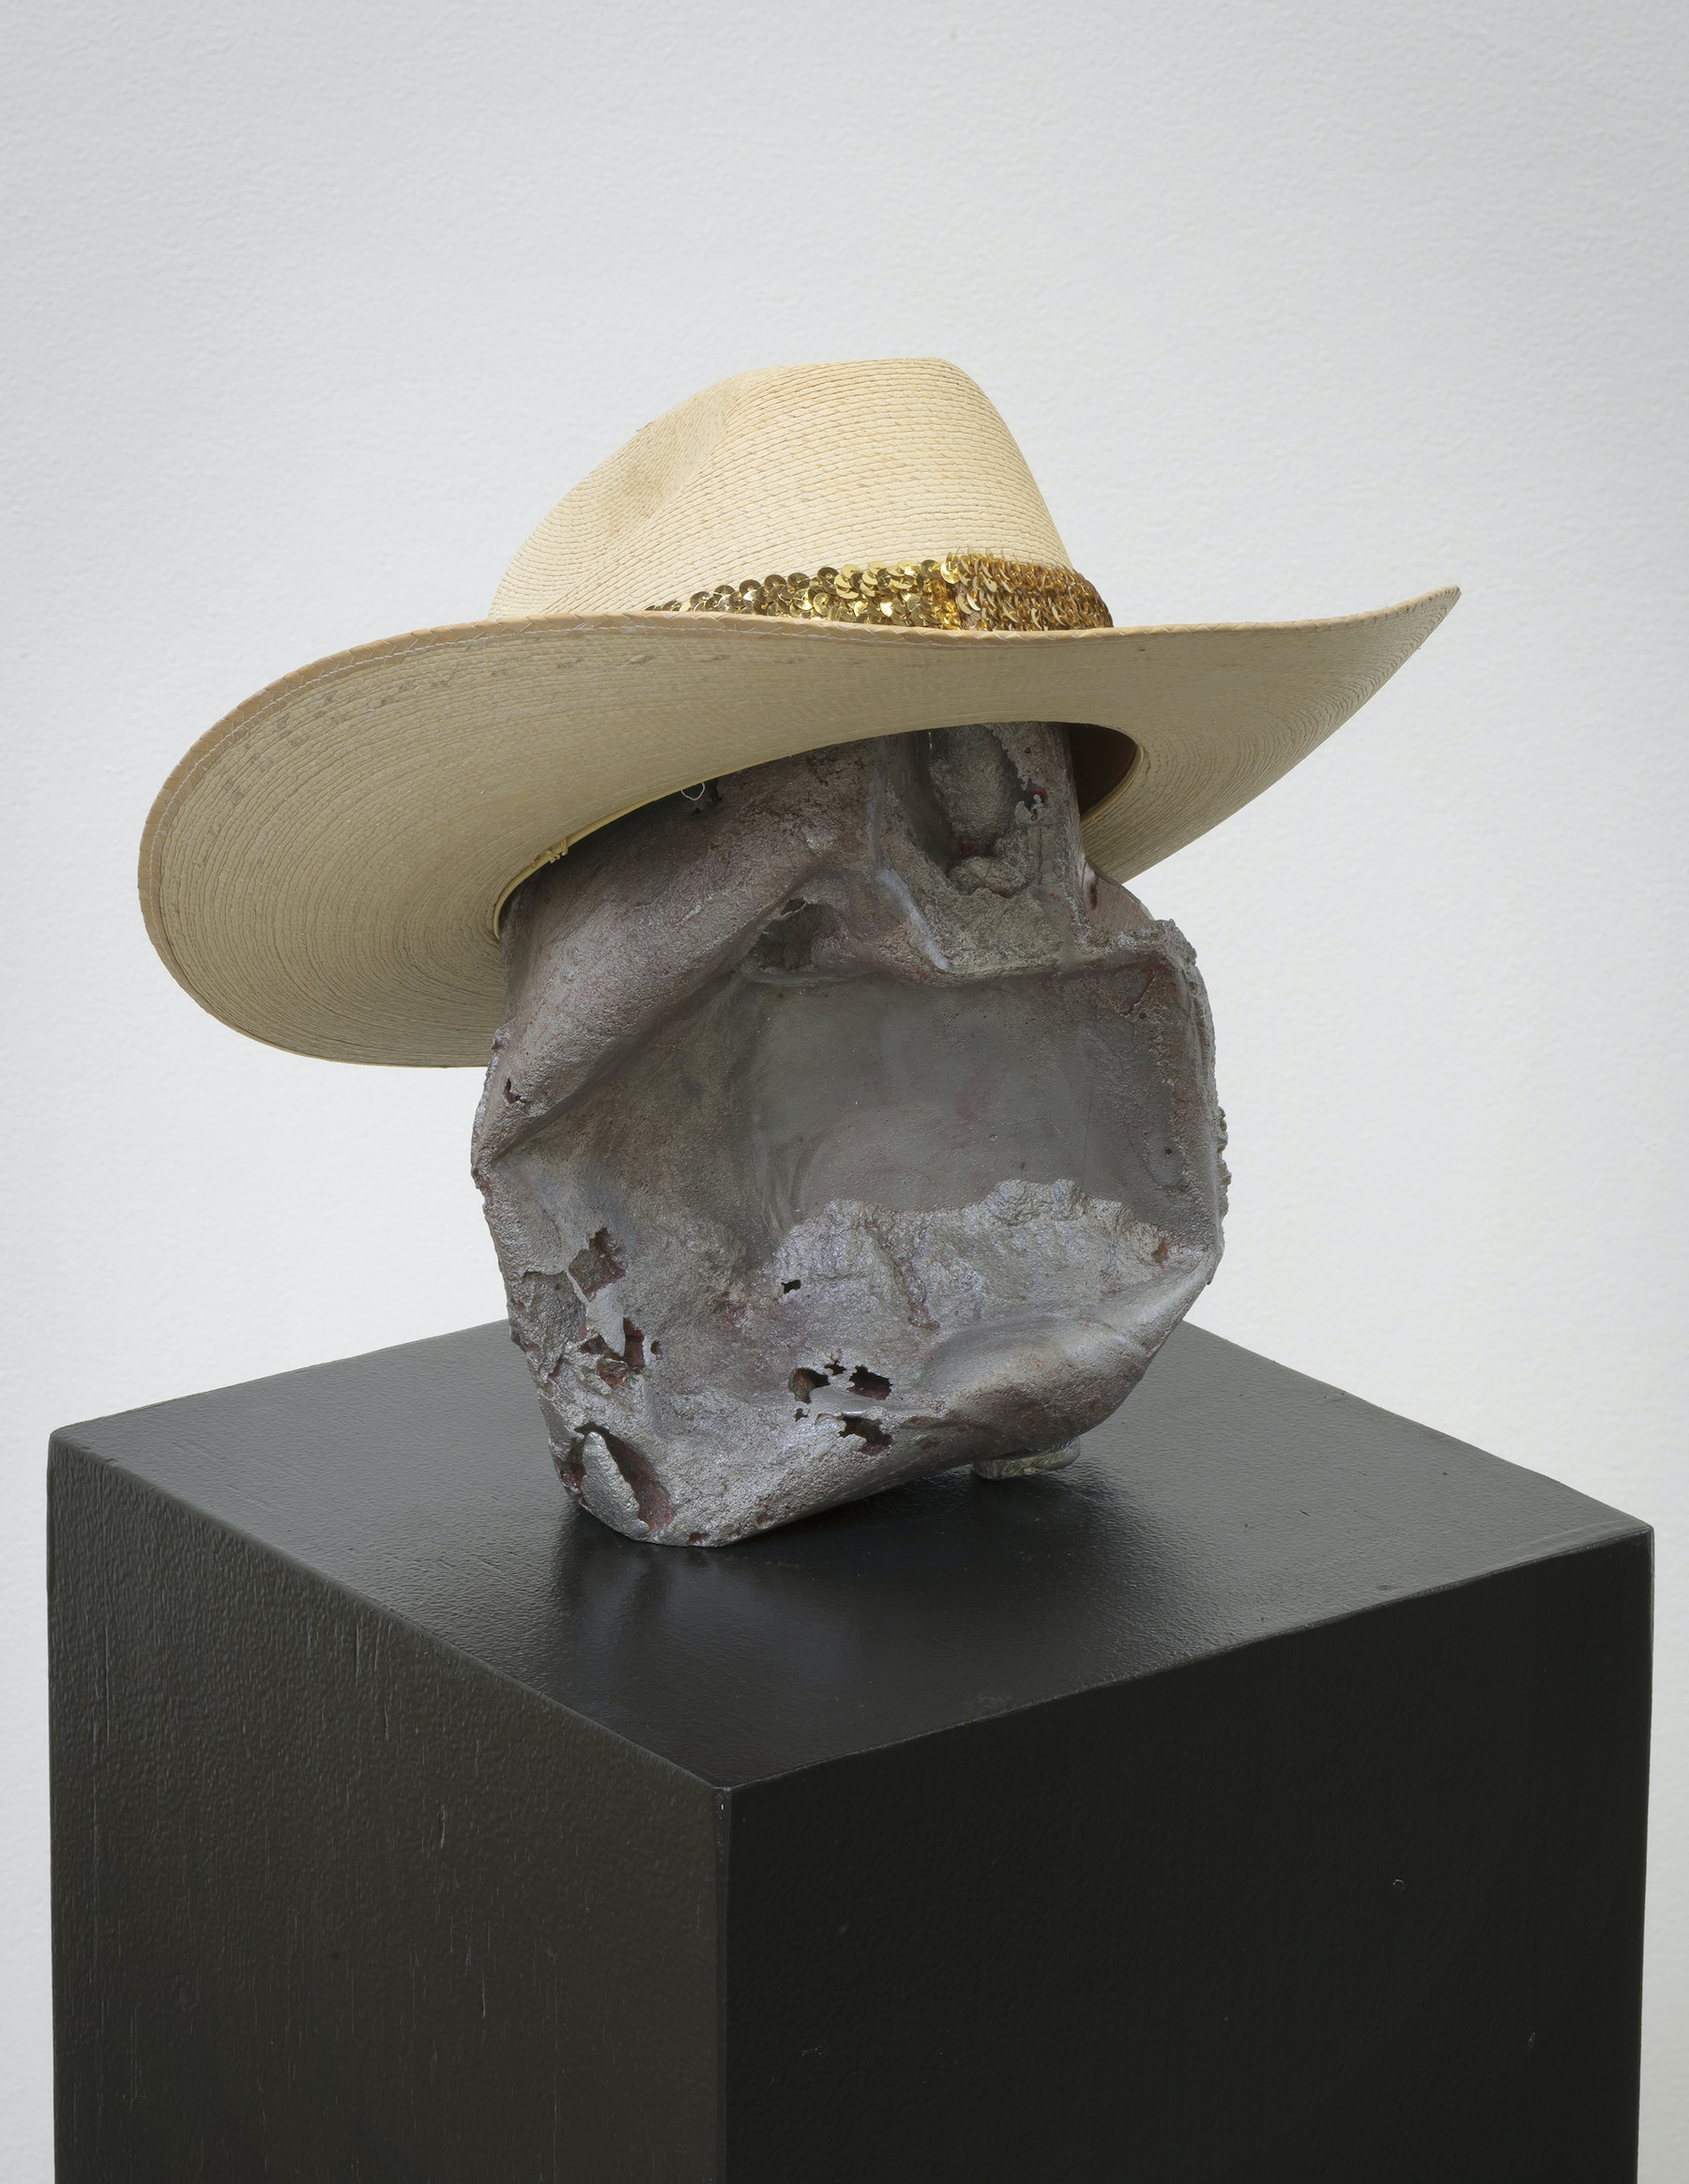 "Edgar Arceneaux ""Red Ronnie,"" 2017 Cast aluminum, enamel, hat, pedestal 48.75 x 12.5 x 12.75"" [HxWxD] (123.83 x 31.75 x 32.39 cm) Inventory #ARC564 Courtesy of the artist and Vielmetter Los Angeles Photo credit: Robert Wedemeyer"